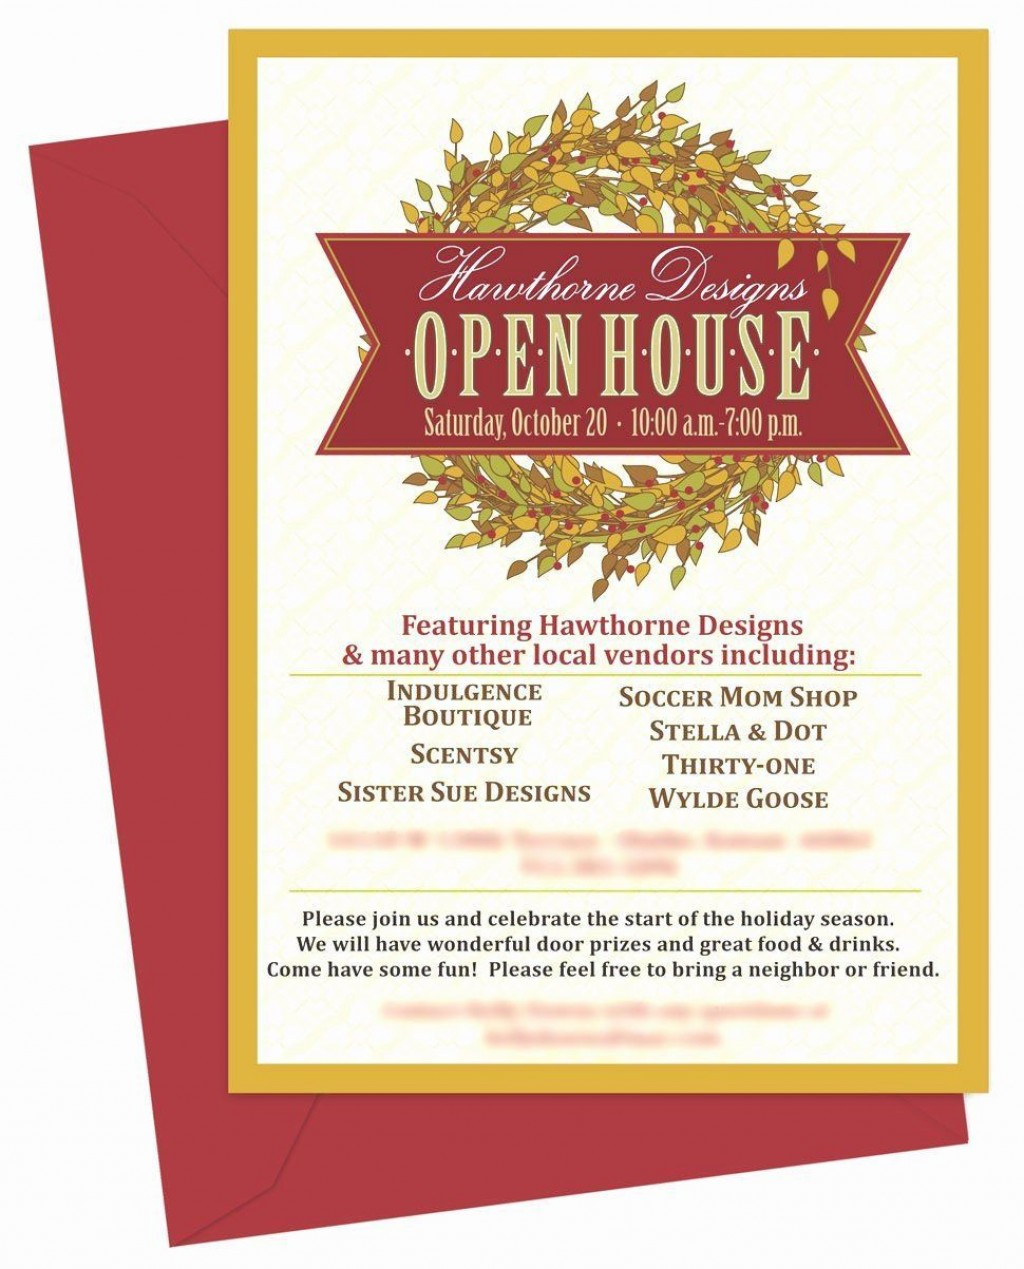 002 Amazing Open House Invite Template Photo  Templates Party InvitationLarge